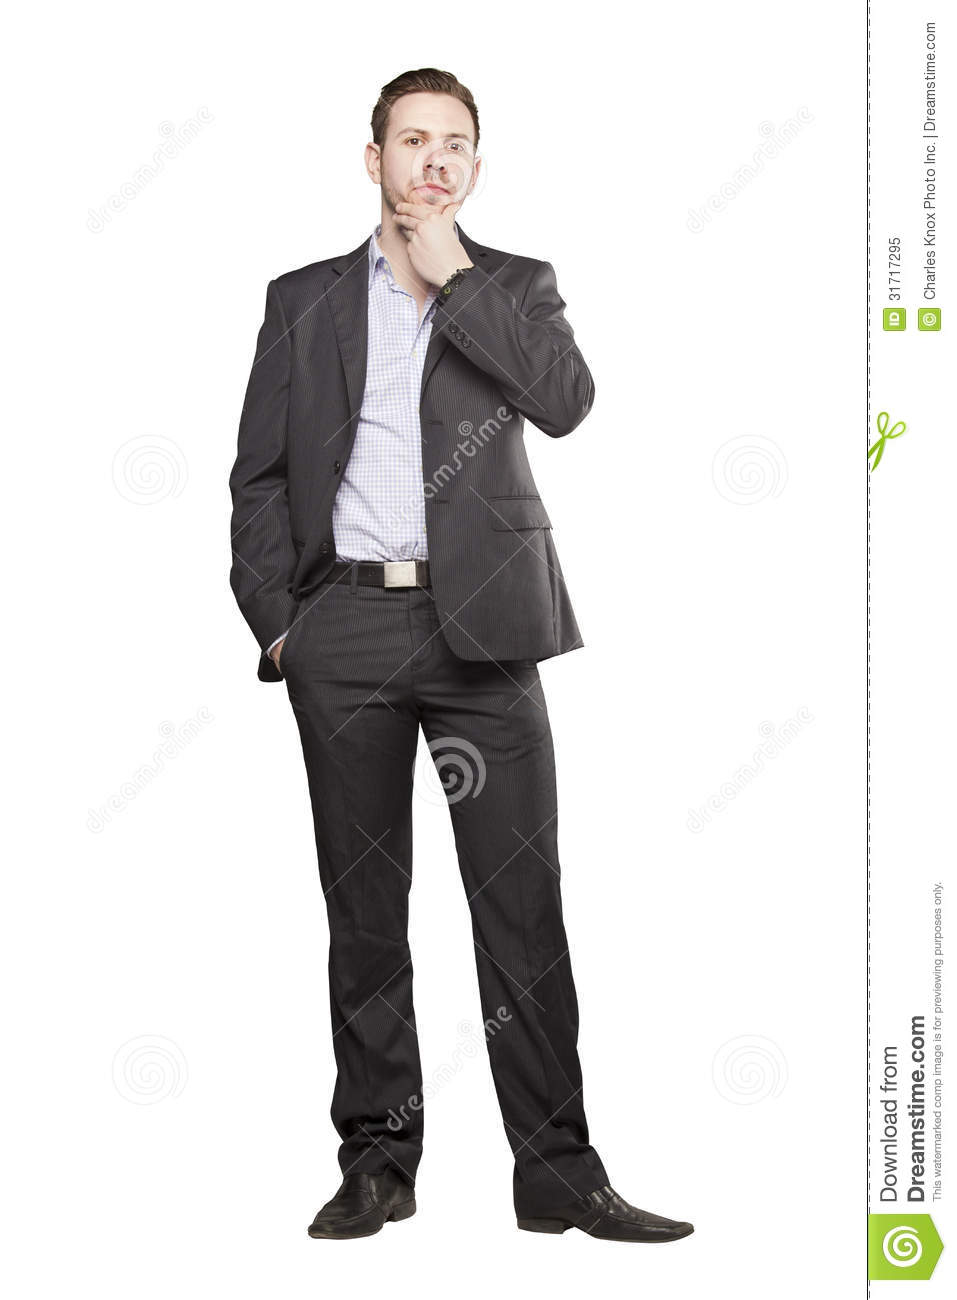 Young Man In Black Suit Royalty Free Stock Photo - Image ...